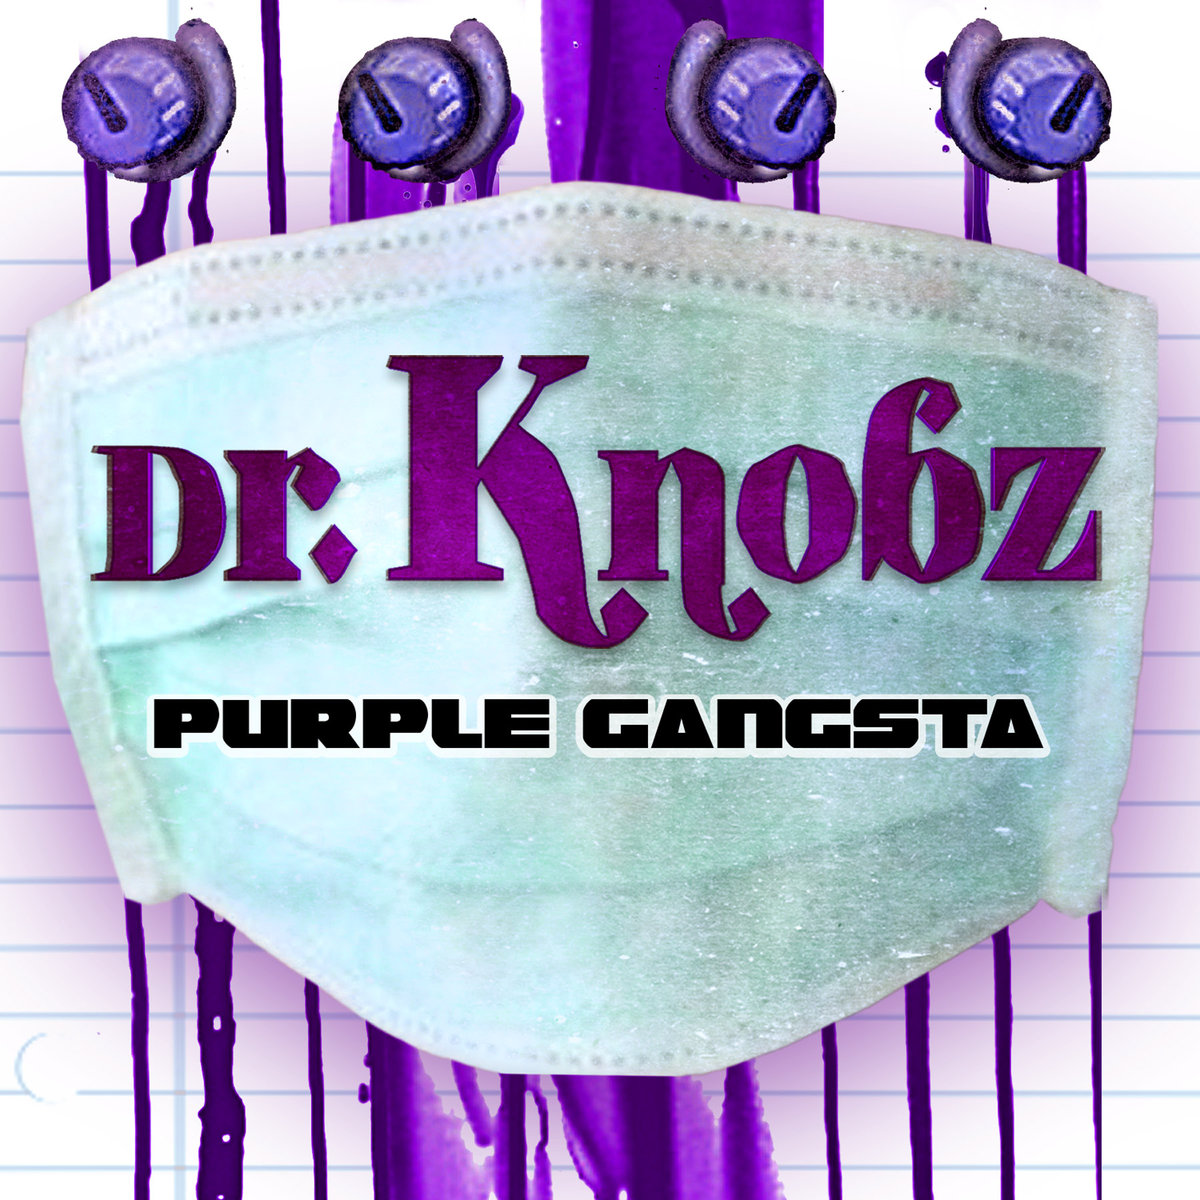 Dr. Knobz - Purple Gangsta @ 'Purple Gangsta' album (electronic, dubstep)